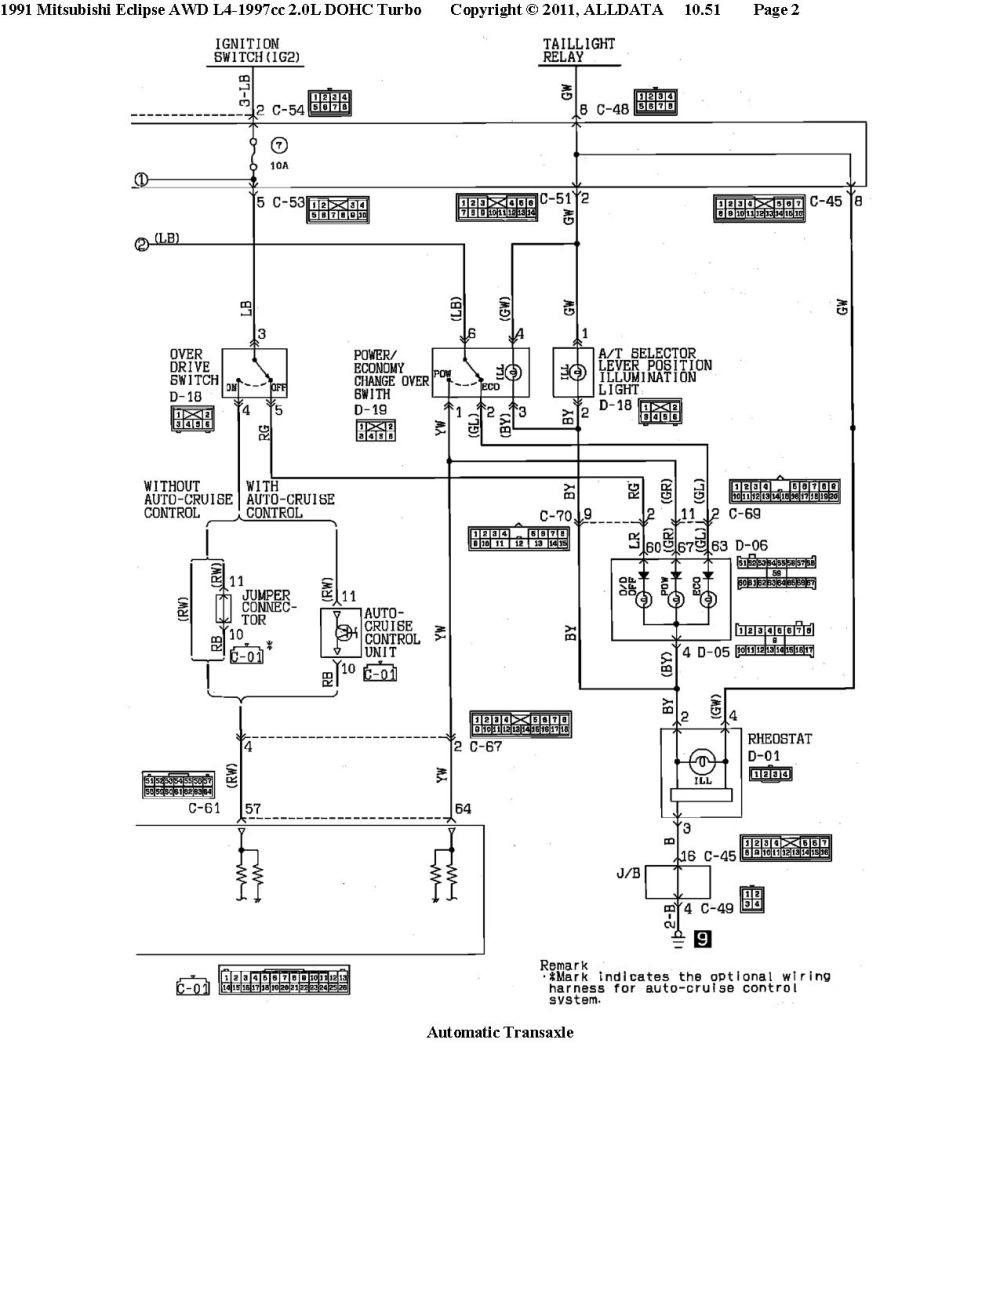 medium resolution of kawasaki kdx200 wiring diagram mercury outboard 115 hp 1987 kdx 200 wiring diagram kdx 200 coil